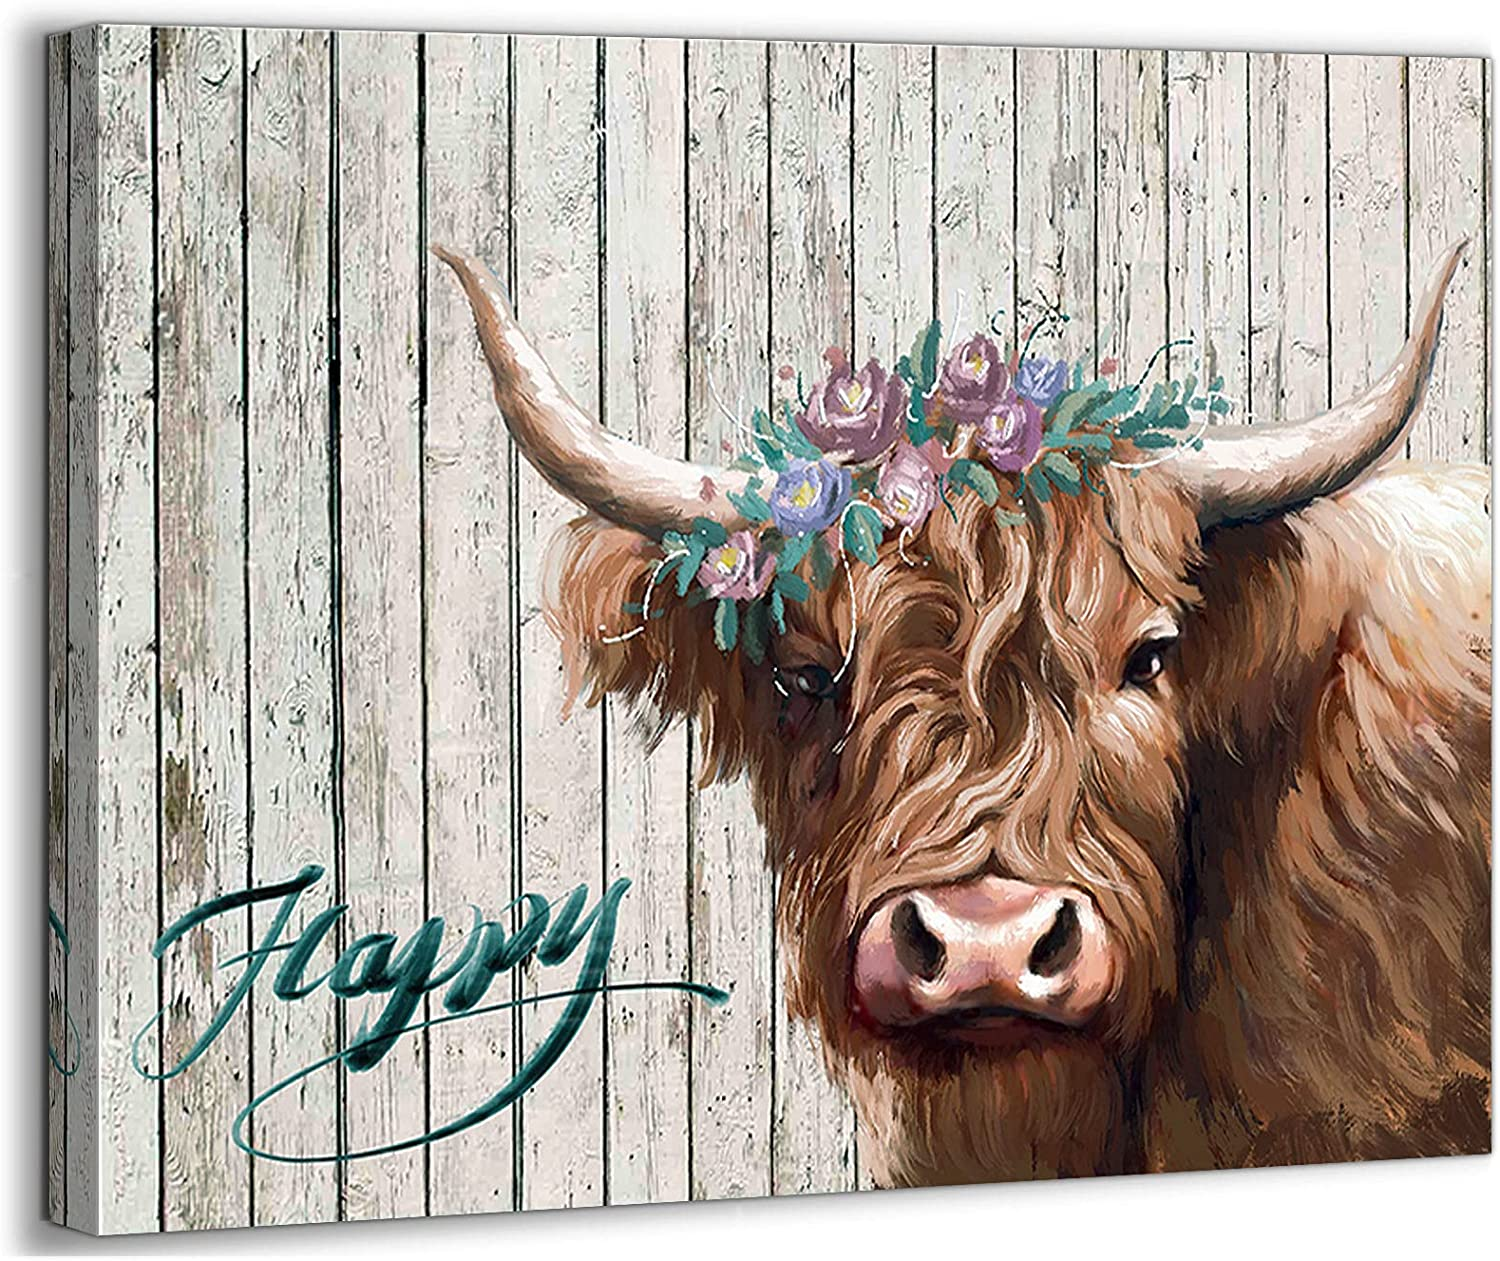 Country Canvas Wall Art for Bedroom Rustic Cow Theme Wall Decor Bathroom Pictures Wall Decor Modern Framed Artwork Decor for Farmhouse Kitchen Dining Room Wall Art Home Wall Decoration Size 12x16